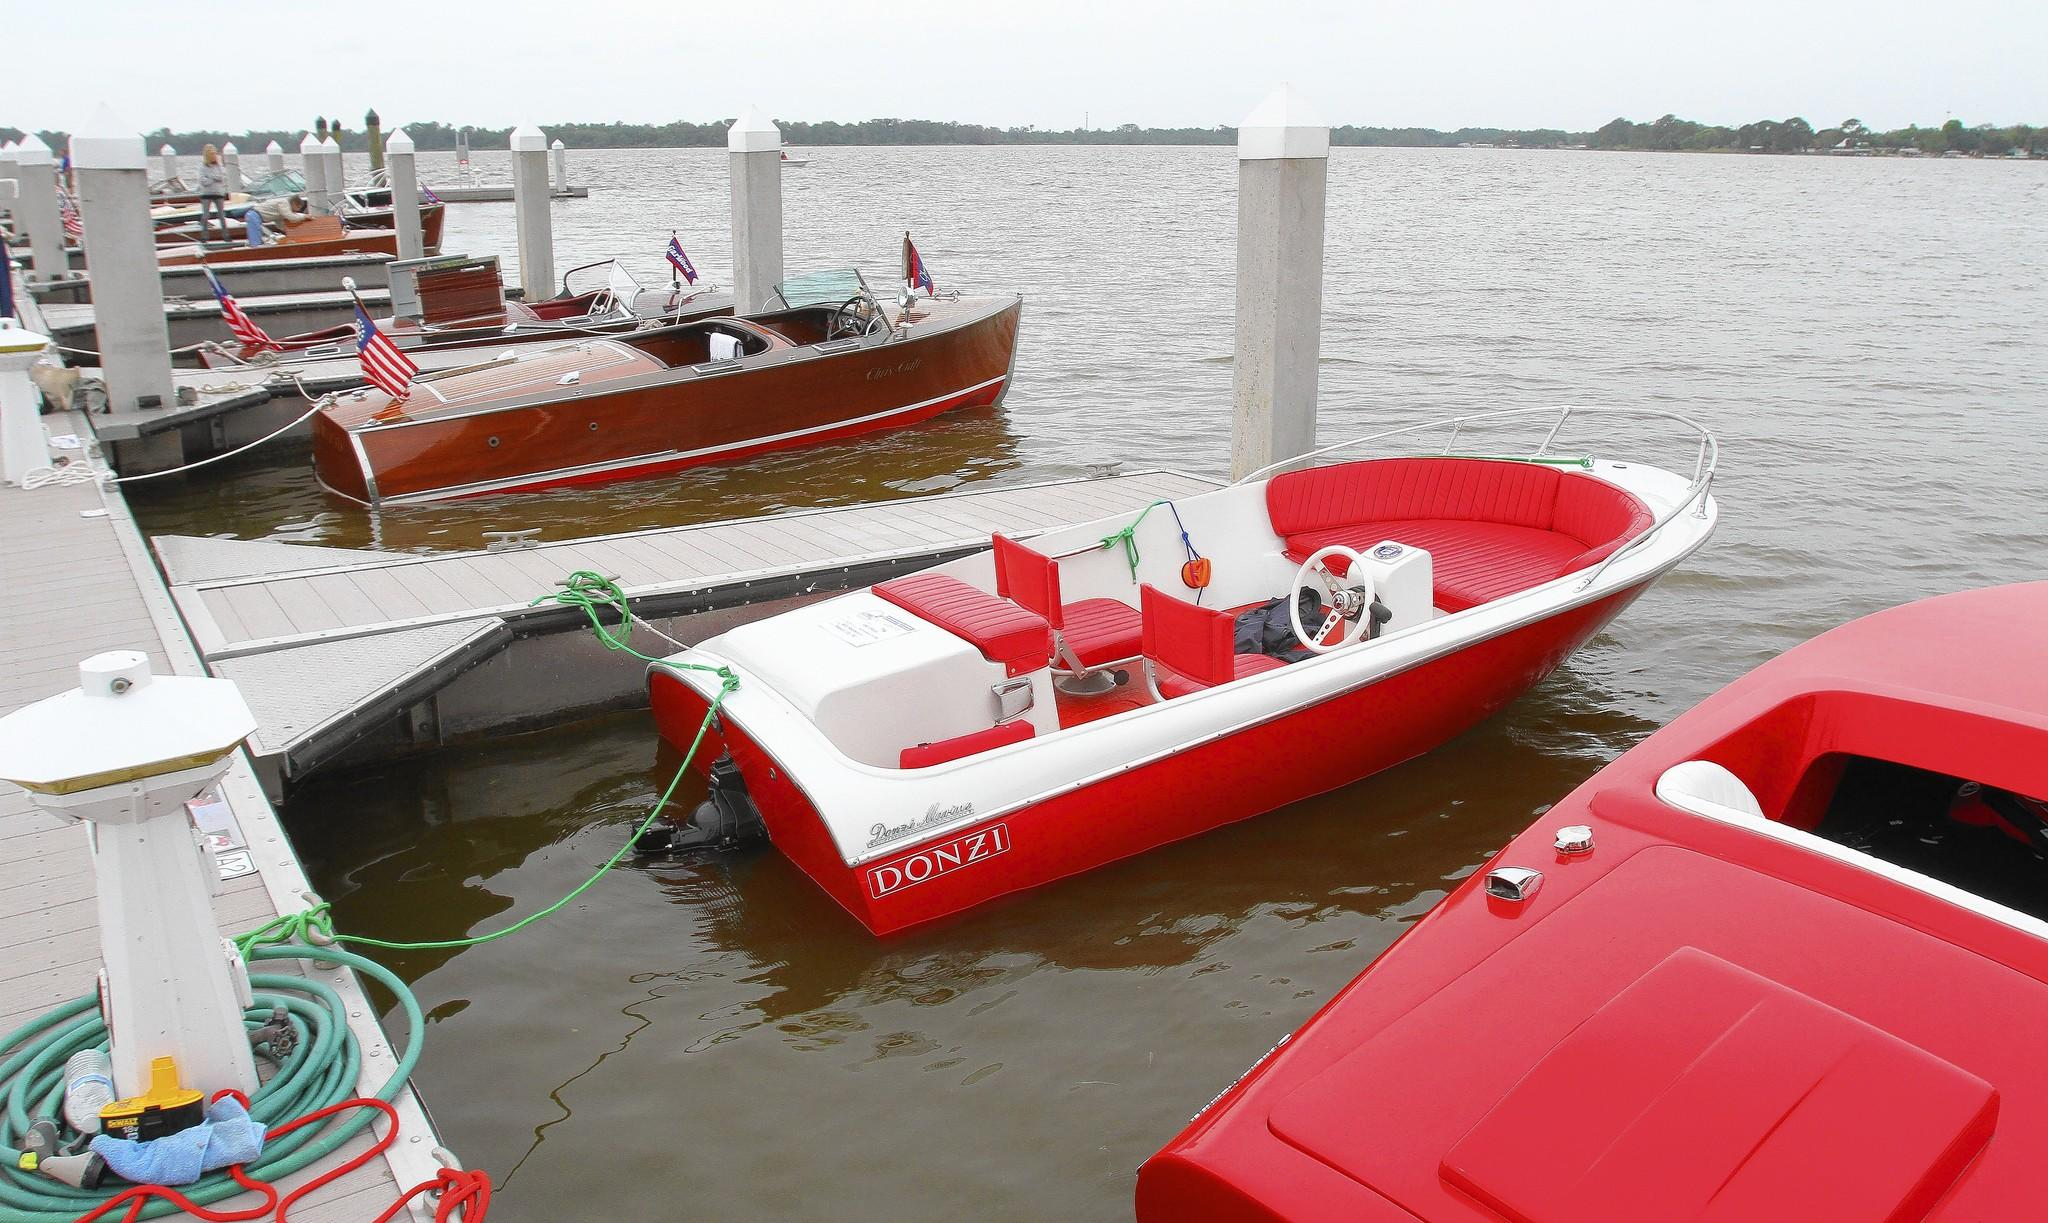 The city of Tavares hosted the 27th Sunnyland Antique Boat Festival on the shore of lake Dora i Wooton Park. The festival featured over 200 antique and classic boats.